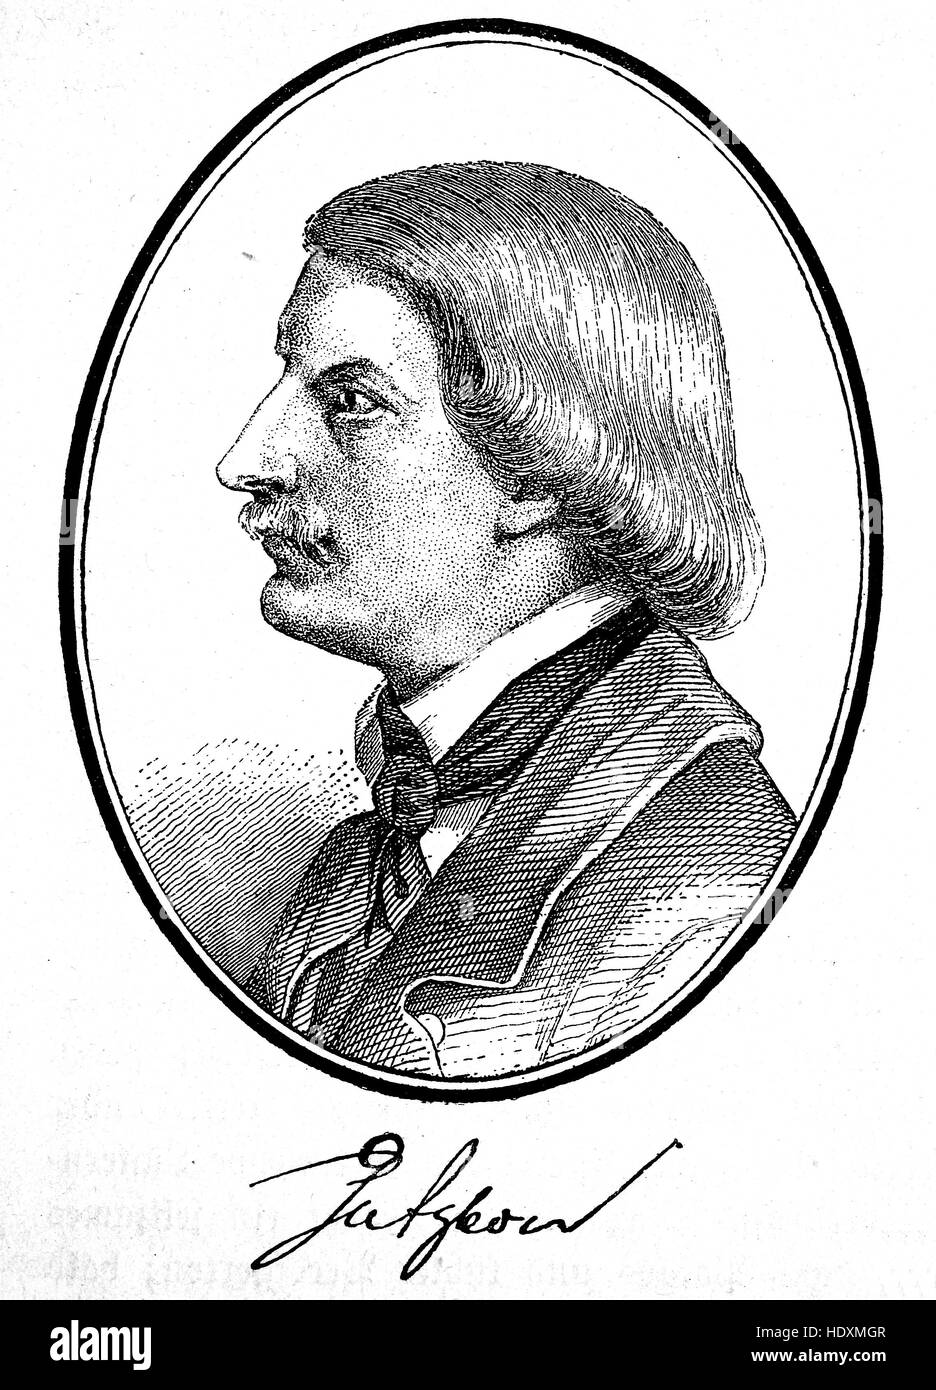 Karl Ferdinand Gutzkow, 1811-1878, a German writer, woodcut from the year 1882, digital improved - Stock Image